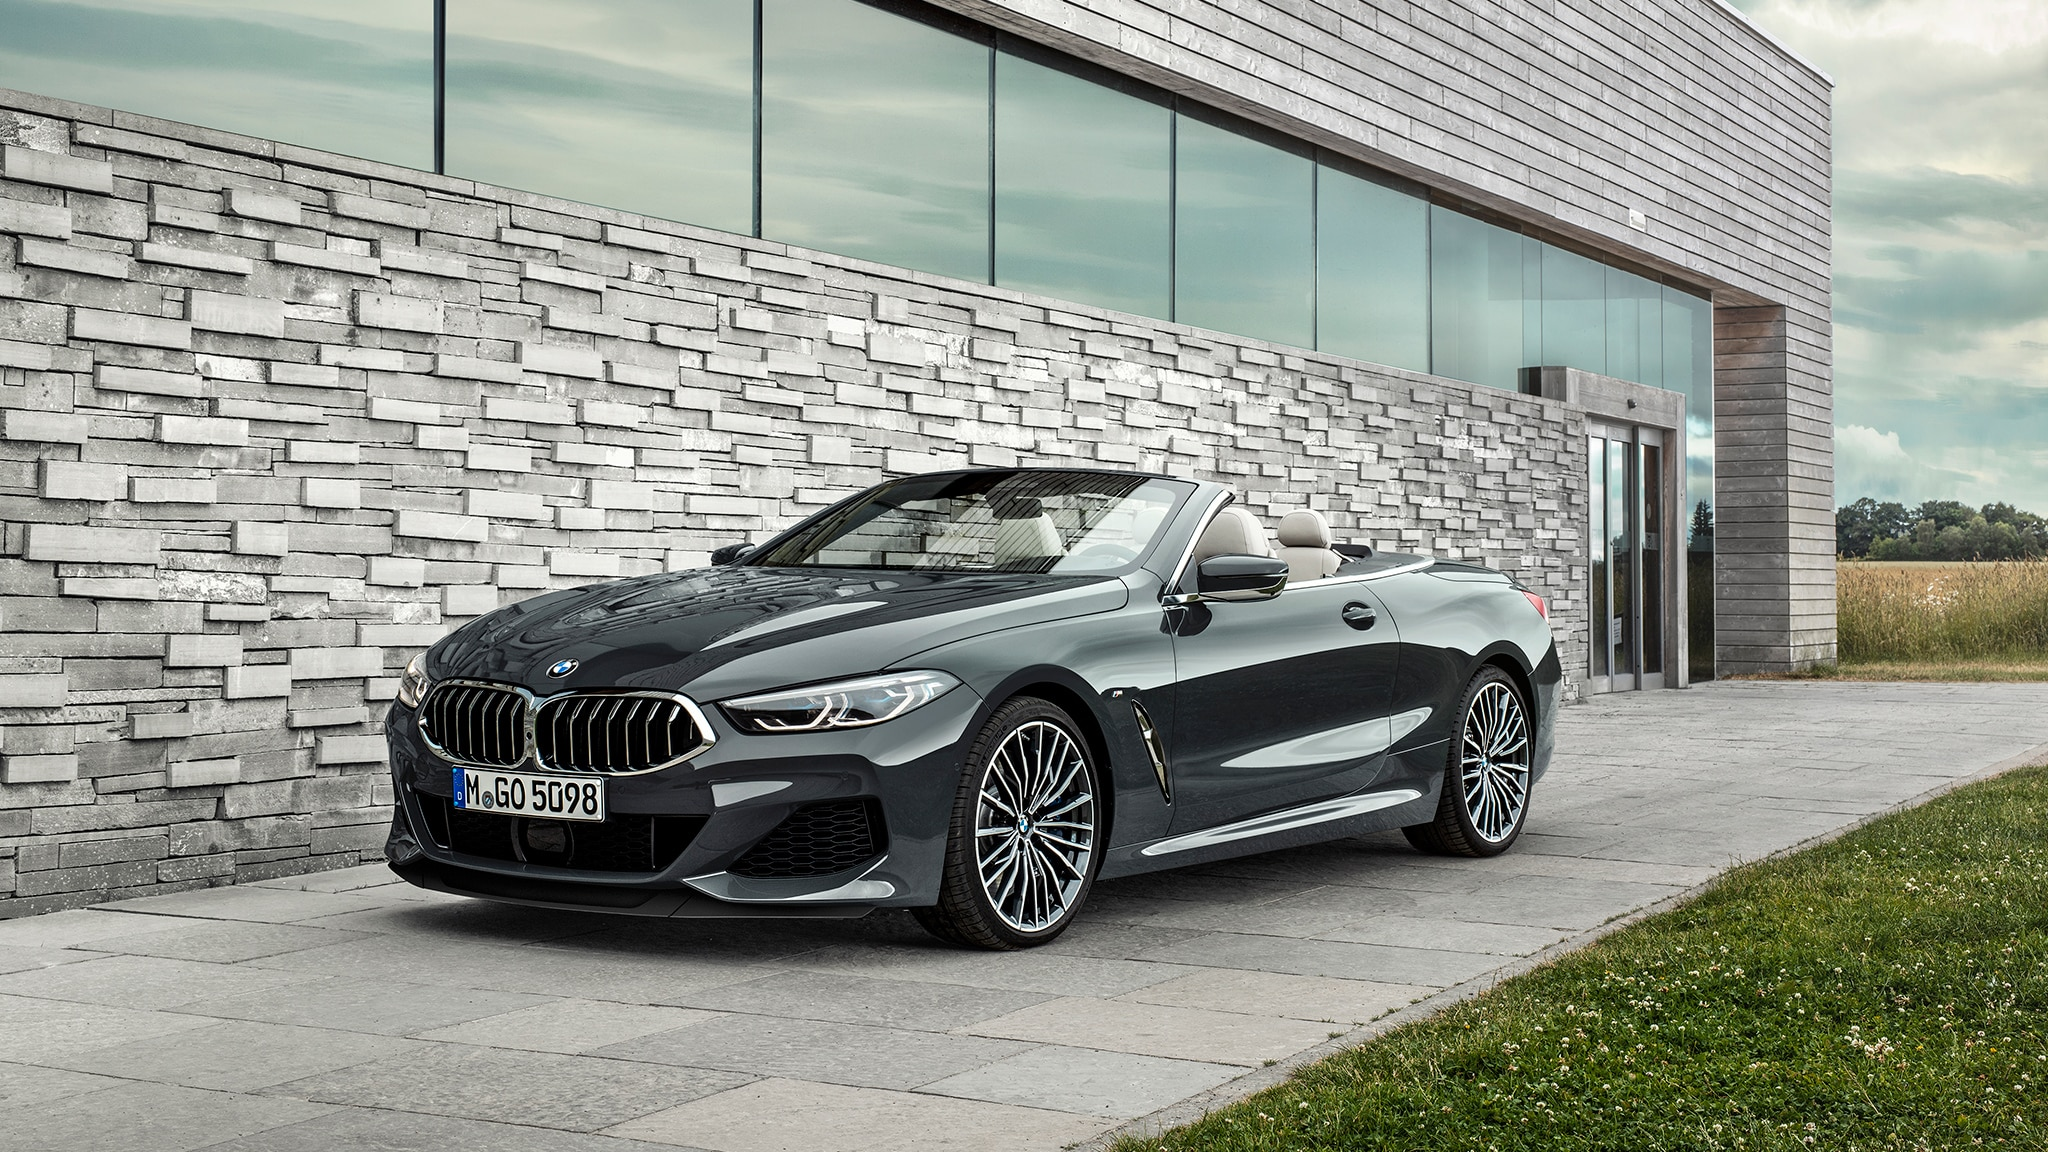 2019 BMW M850i Convertible Parked Near Modern Building